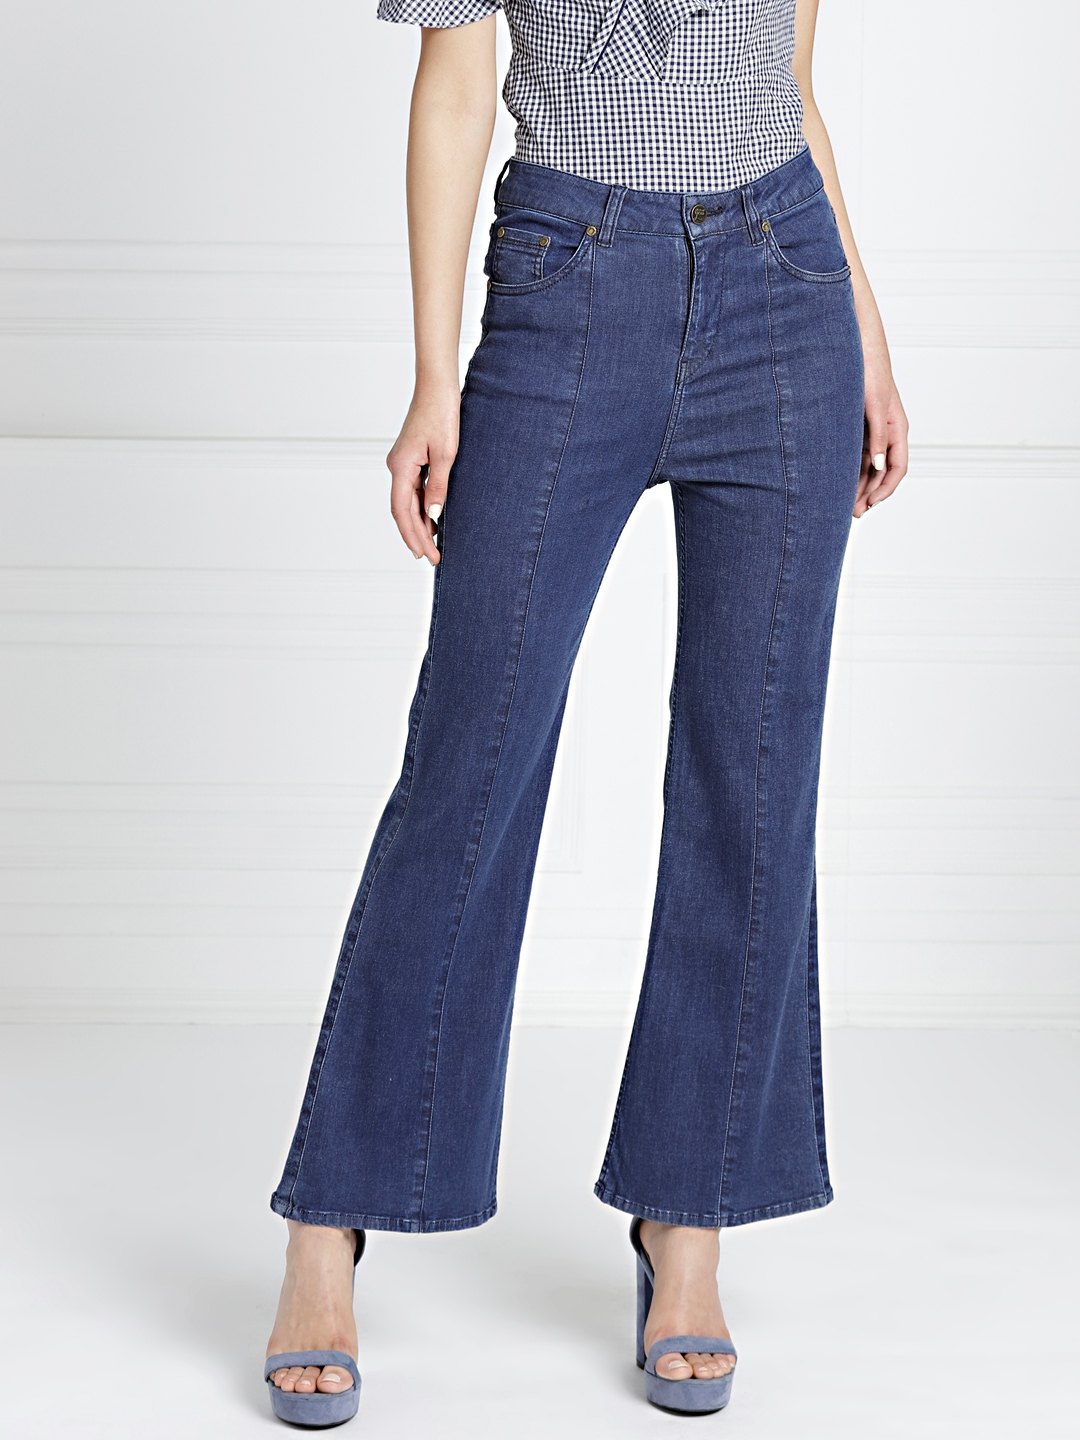 6e1c1d229b900 all about you from Deepika Padukone Women Blue Flared Clean Look  Stretchable Jeans